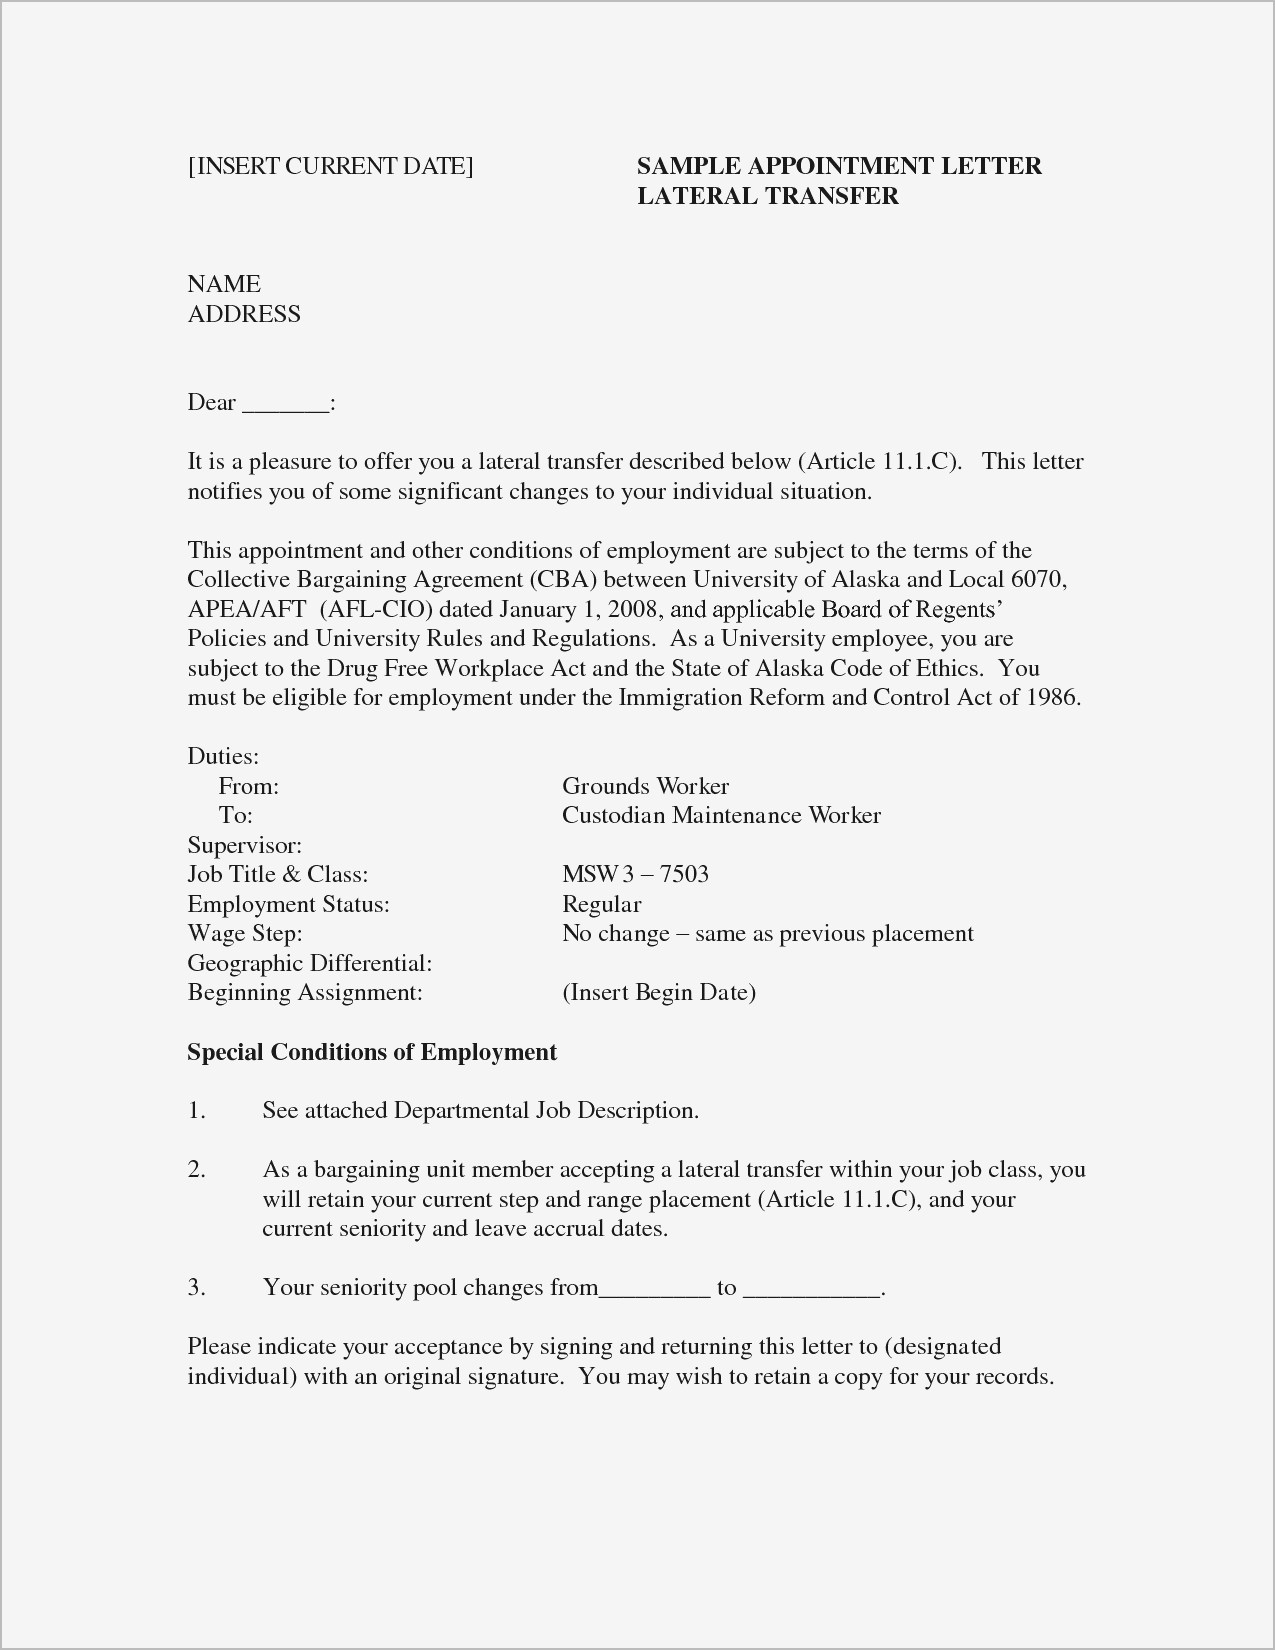 Sample Child Support Letter Template Examples | Letter ...